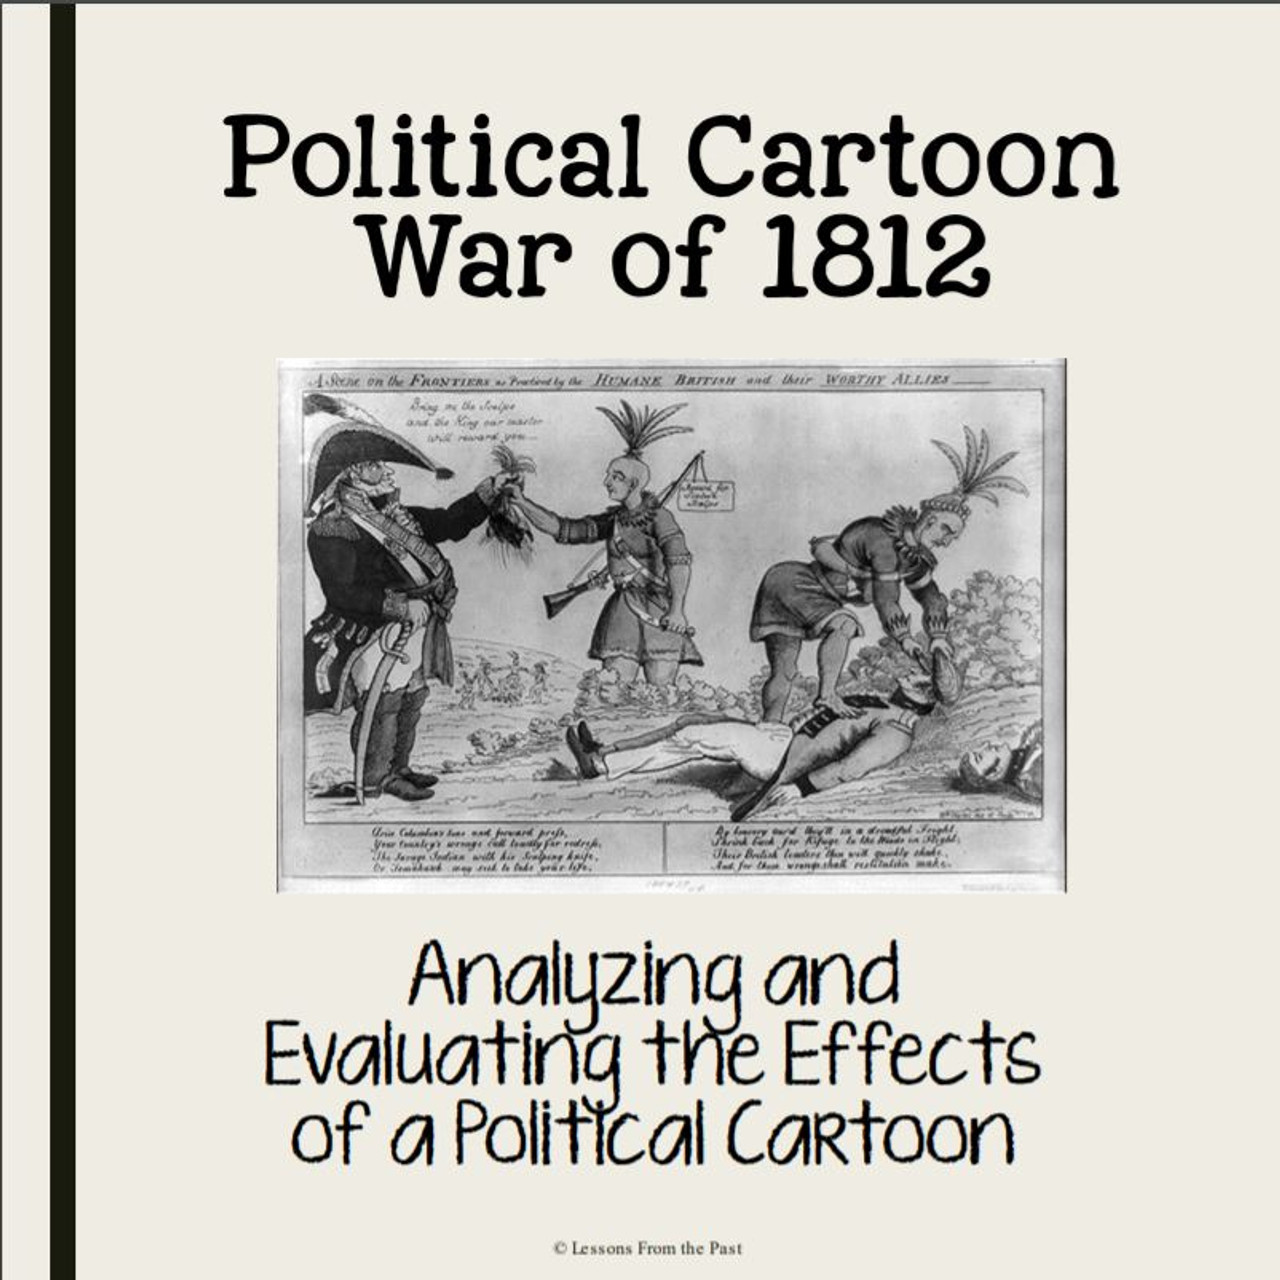 Political Cartoon War of 1812-Were British Actions Humane? - Amped Up  Learning [ 1280 x 1280 Pixel ]